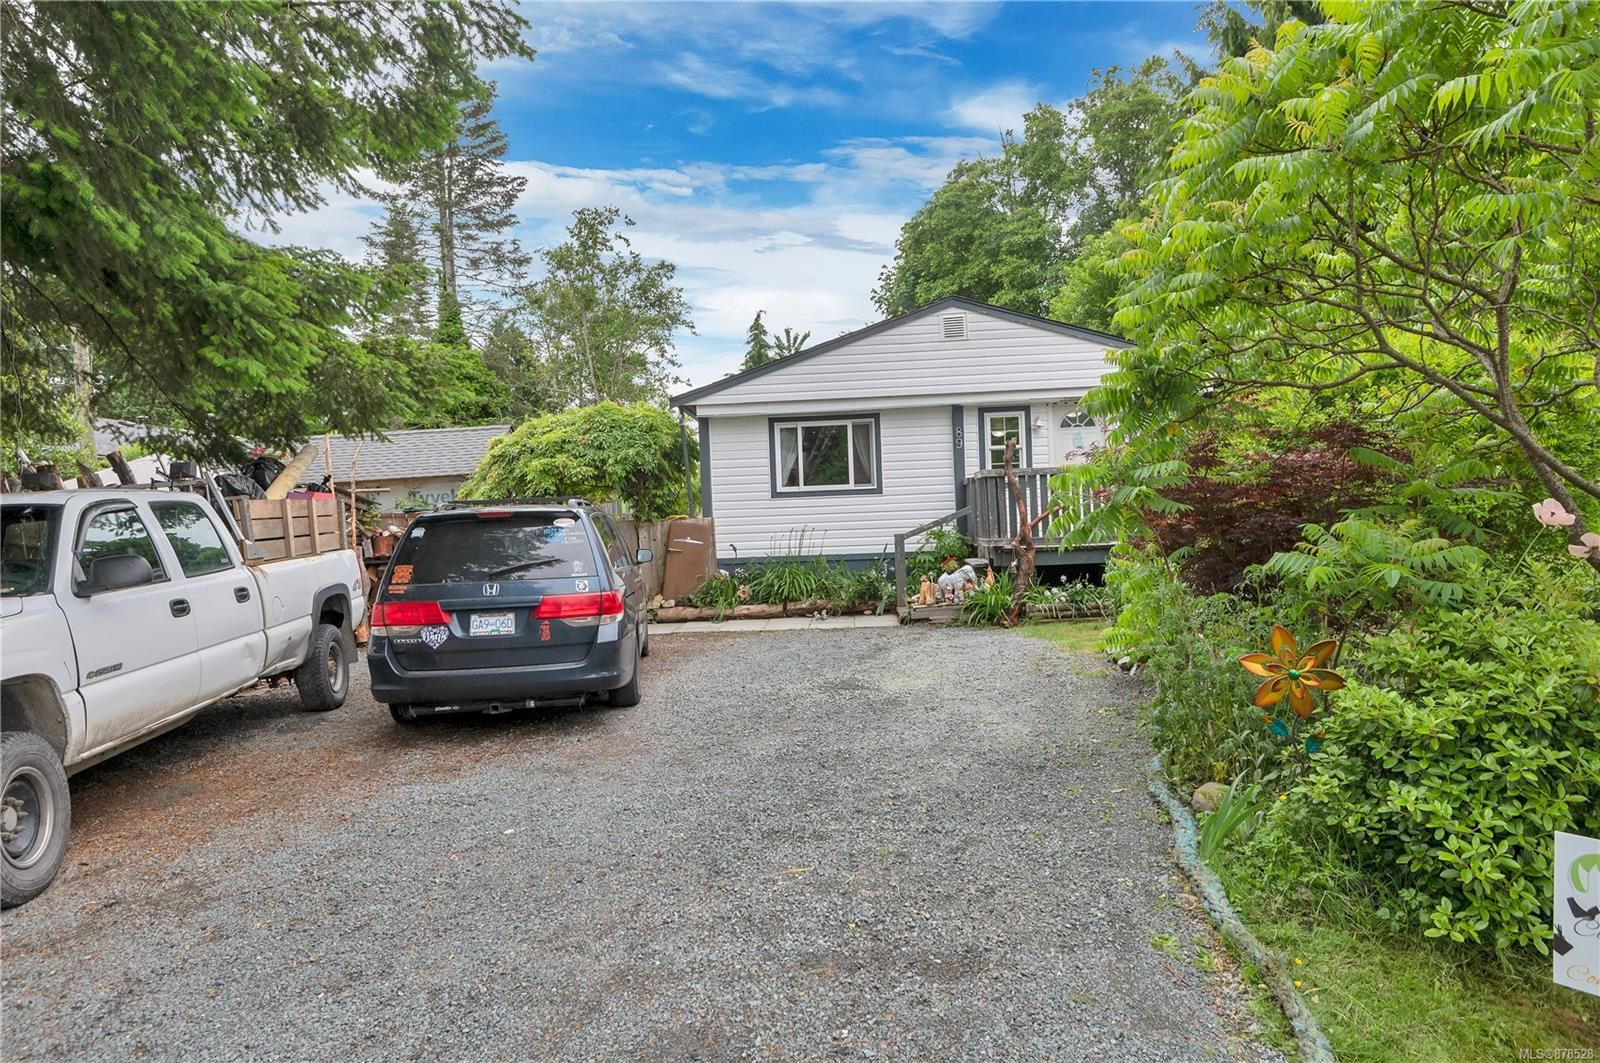 Main Photo: 89 Lynnwood Rd in : CR Campbell River South Manufactured Home for sale (Campbell River)  : MLS®# 878528